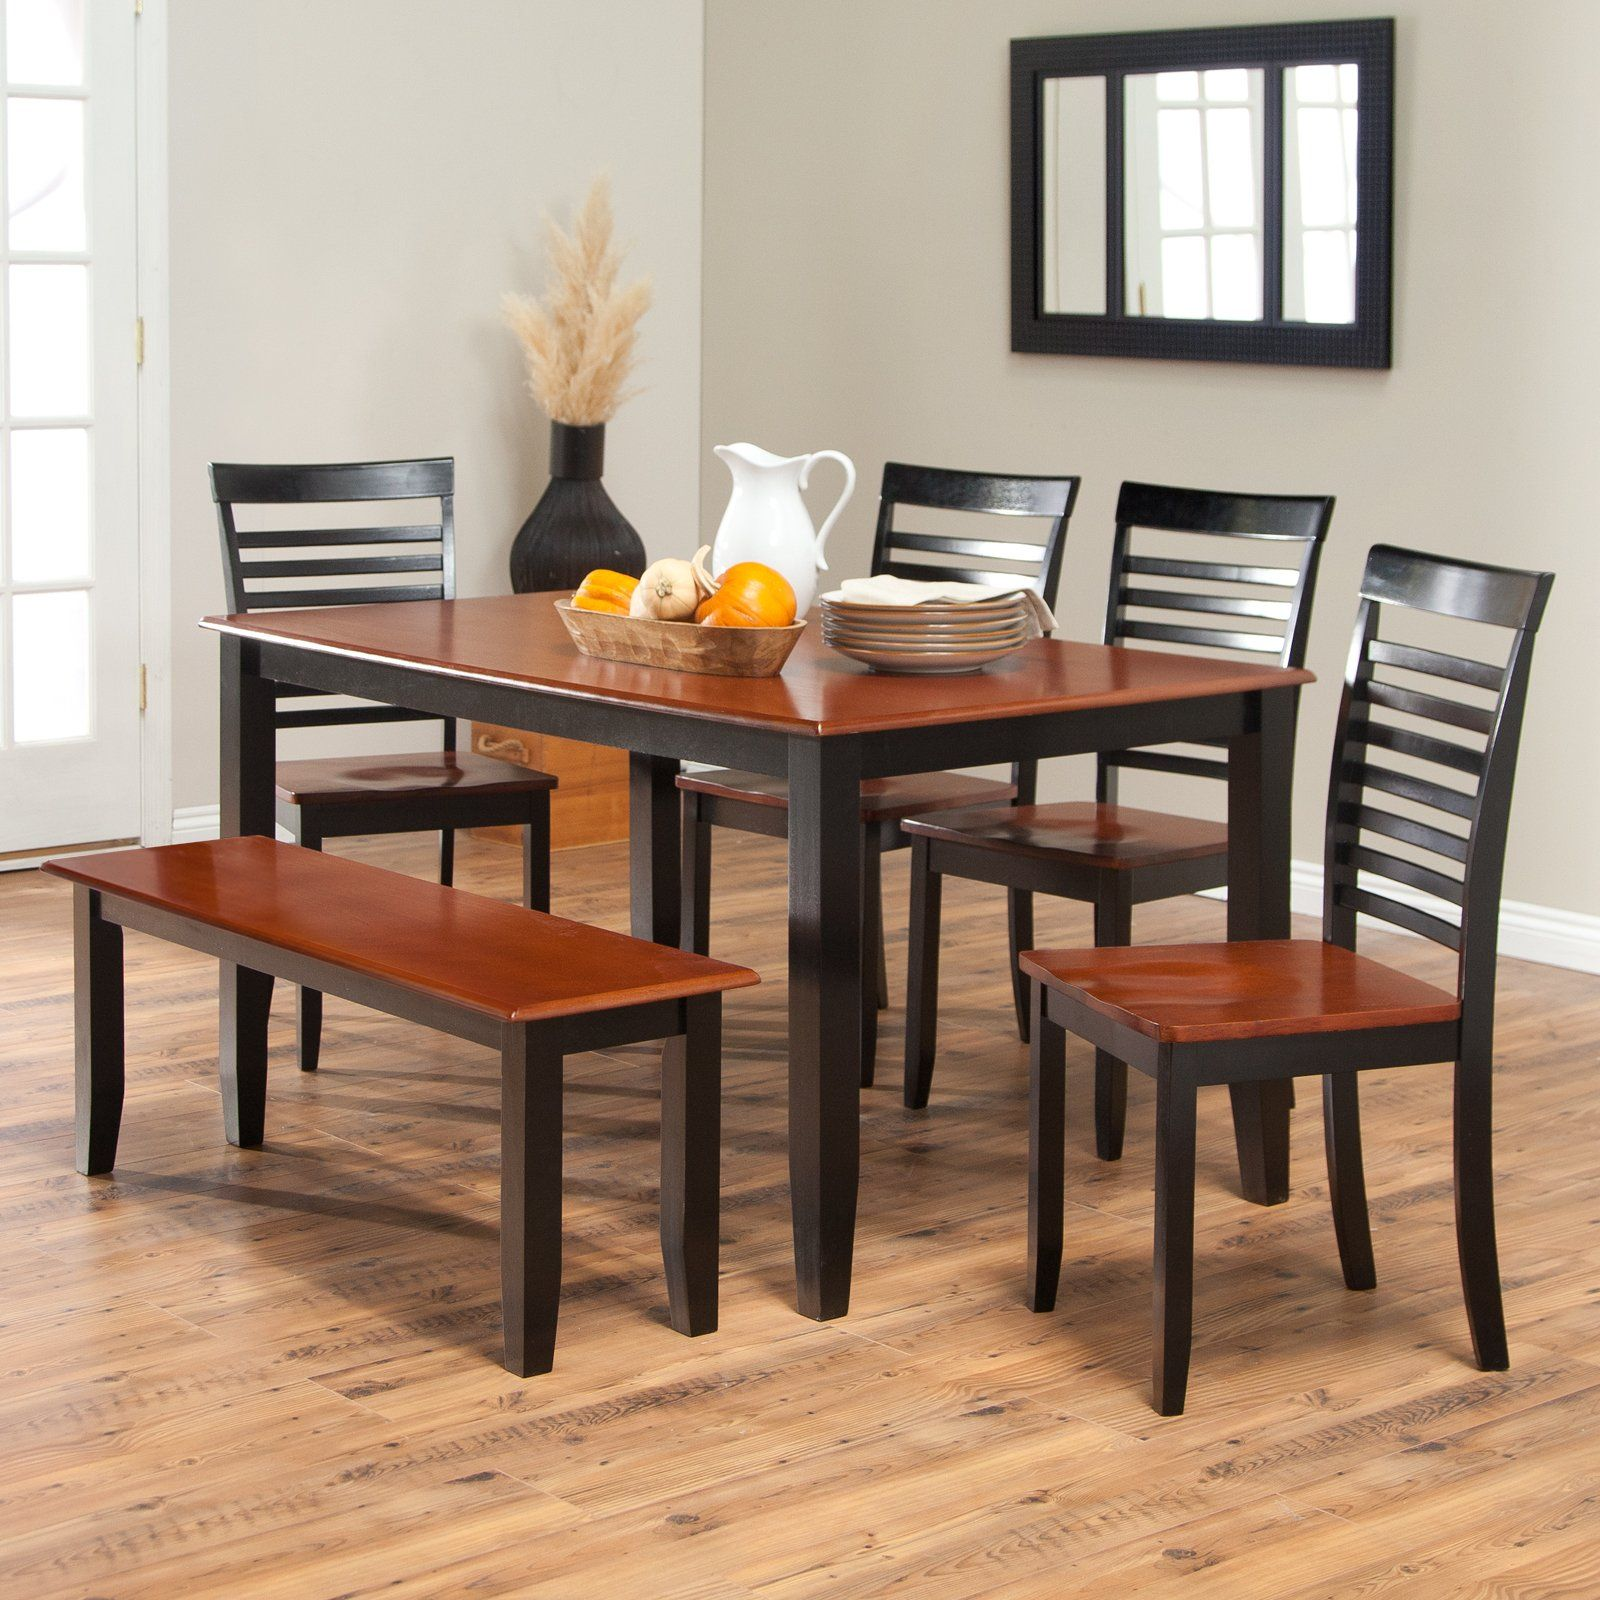 Bloomington Dining Table Set - Black/Cherry $529.98 | Top Picks for ...